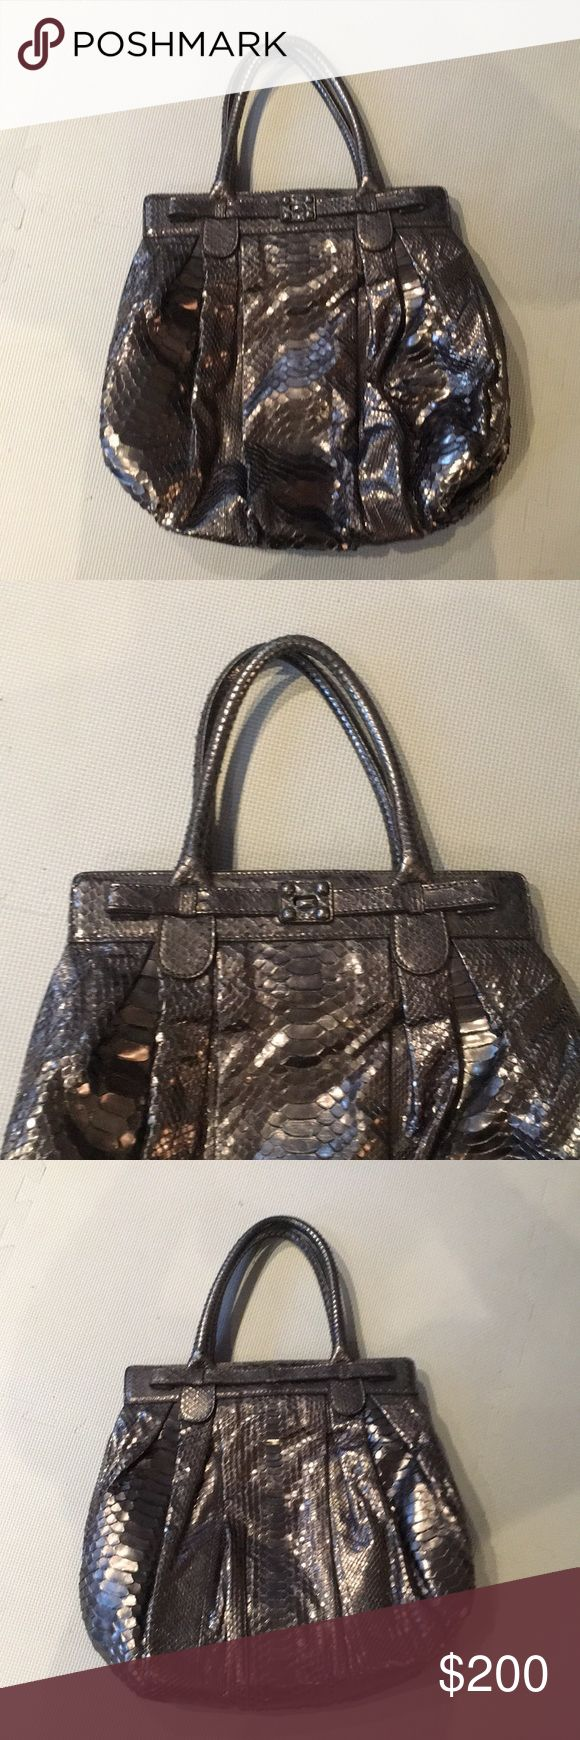 Zagliani Python Bag Zagliani Pewter Python Puffy Hobo Bag. Retails for 4,350 The python of Zagliani's Python Puffy is made using their special silicone-injected skins so they are soft and supple! Under the handles with their drop of 6.25 inches, a tab lock comes through the soft frame at the top to the front, opening to a brown suede lining with two sections inside. The front section has a cell phone pocket, the back section has a zipped pocket. A large and slouchy bag with silver hardware…